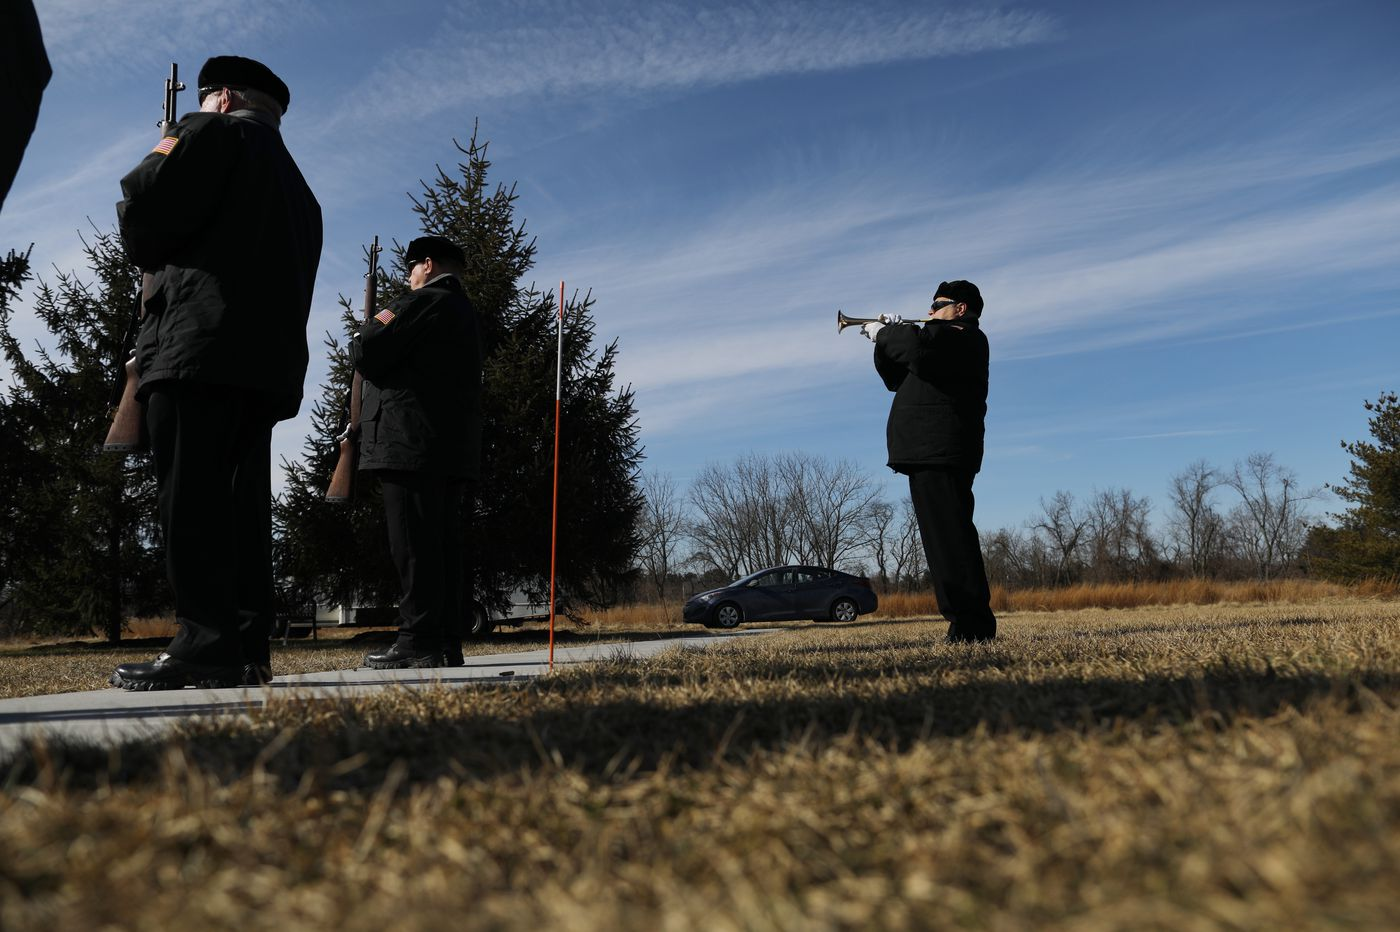 Service held at Washington Crossing National Cemetery gives